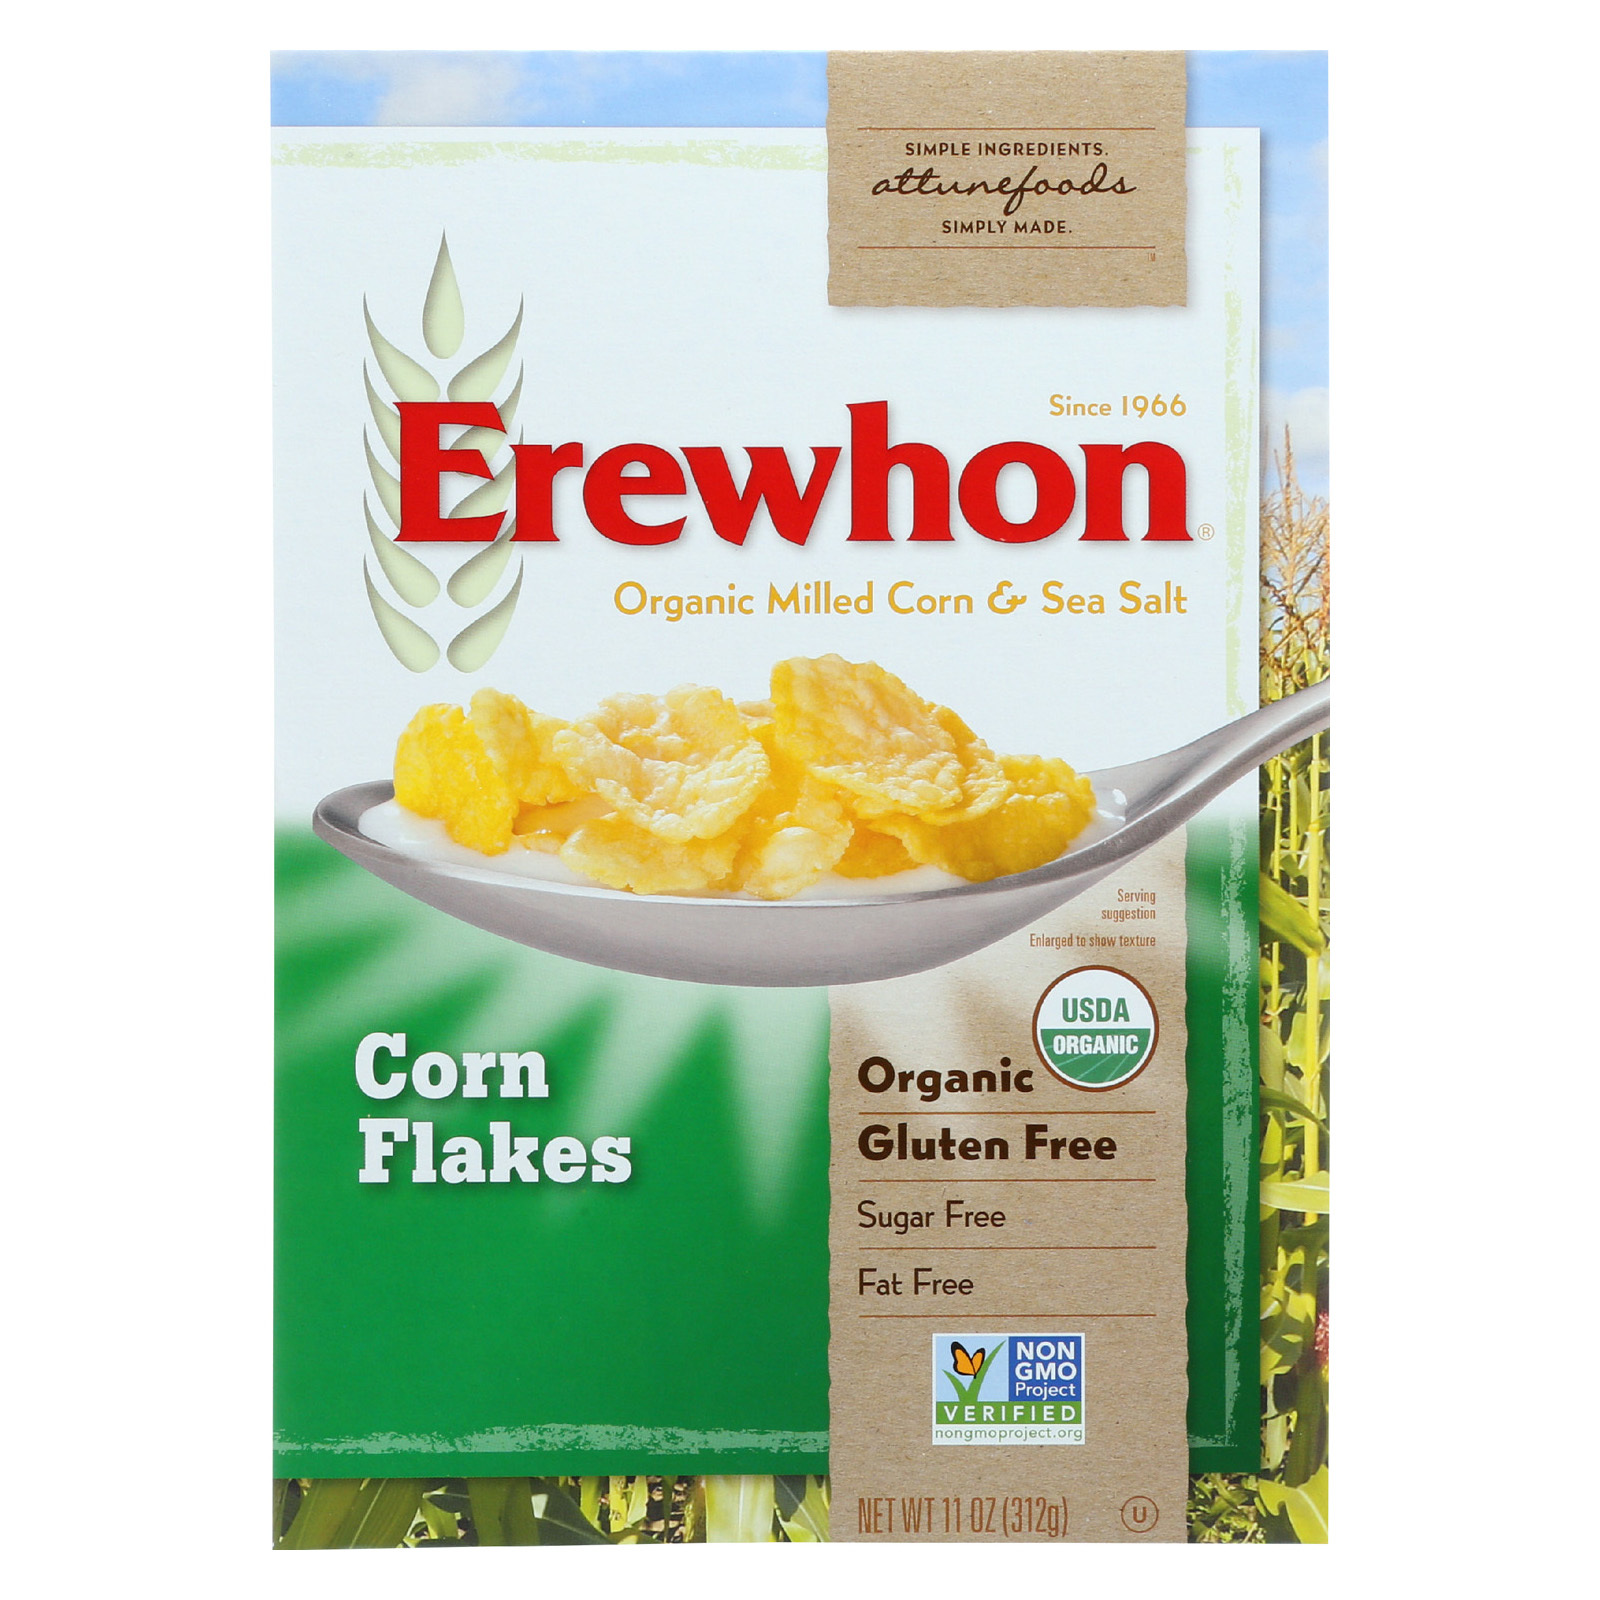 Erewhon Organic Cereal - Corn Flakes - 11 oz